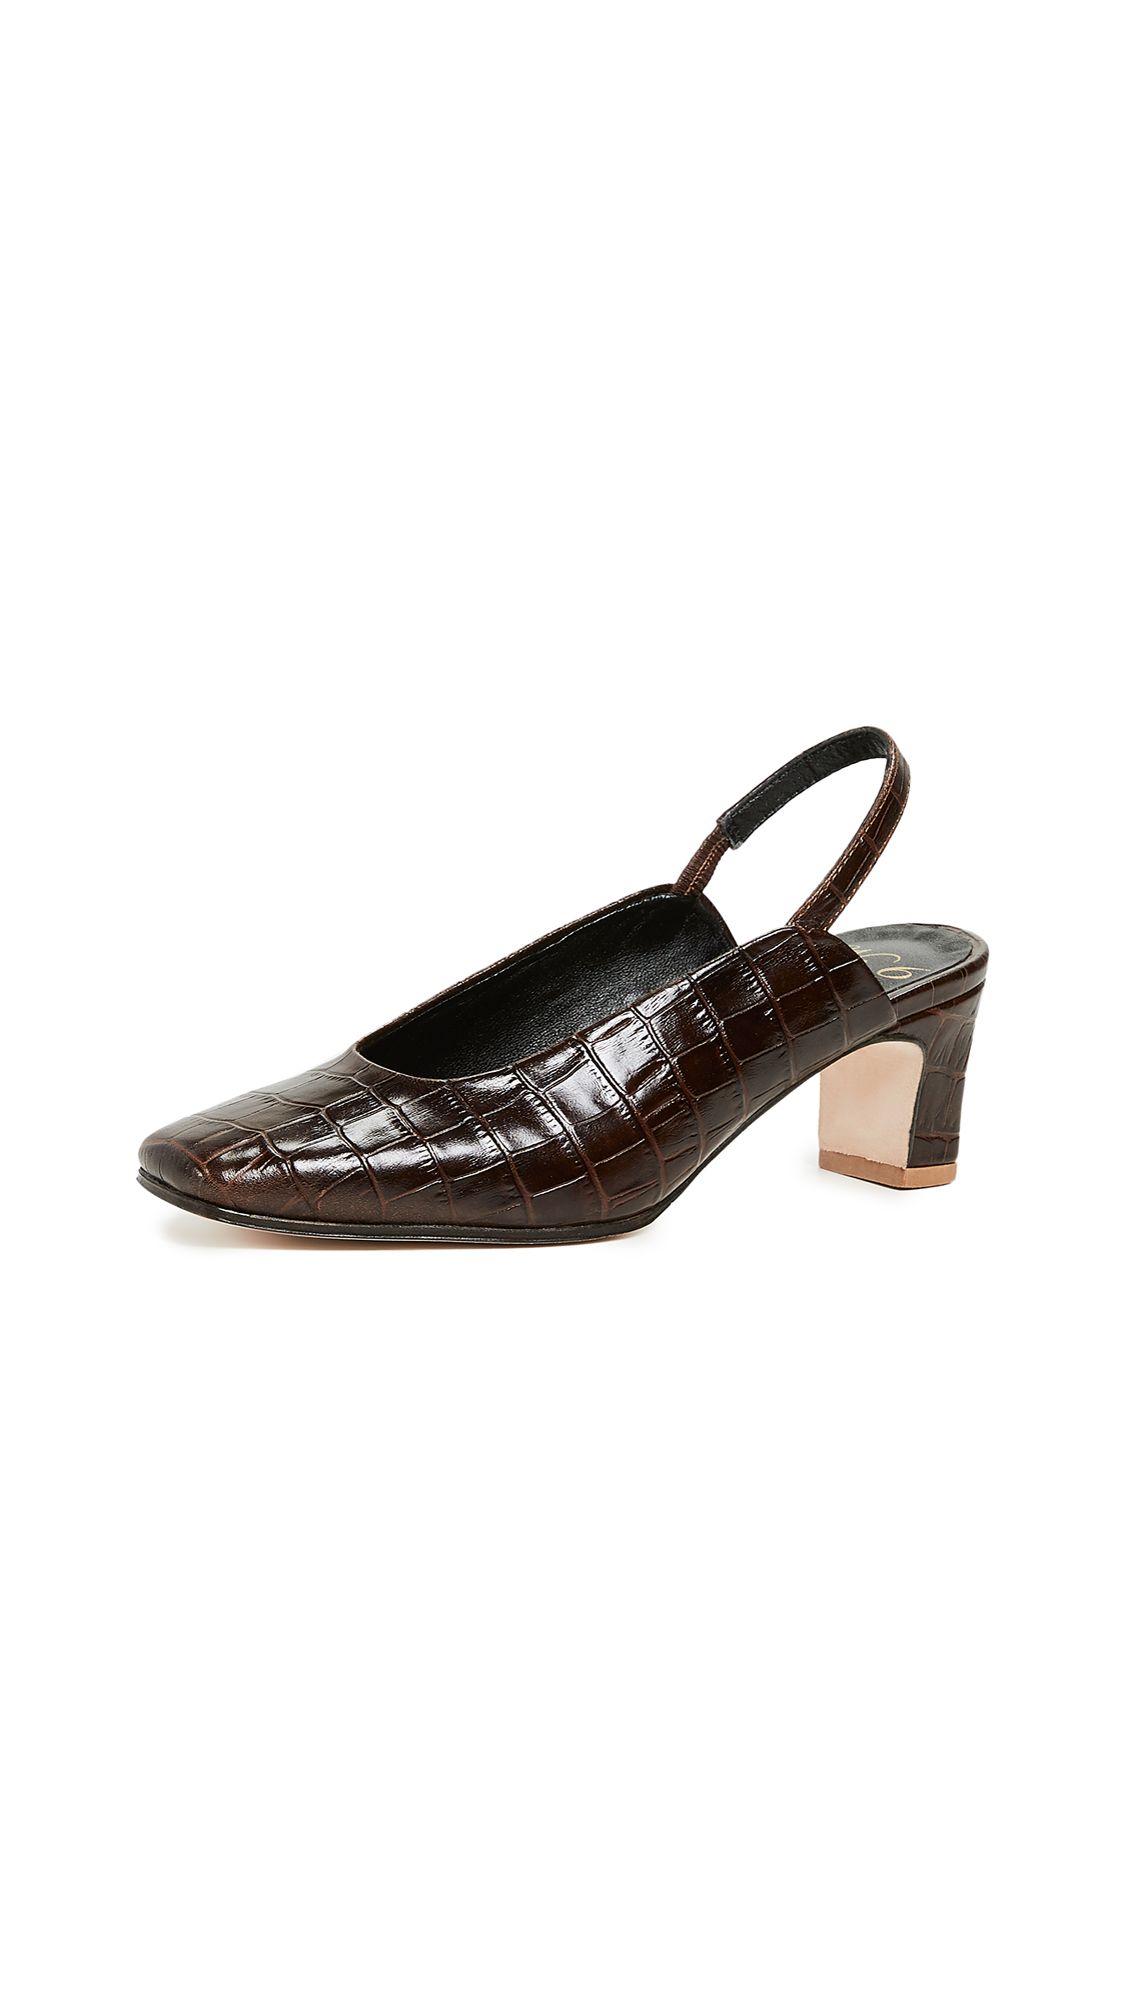 NO. 6 Renee Slingback Pumps in Coffee